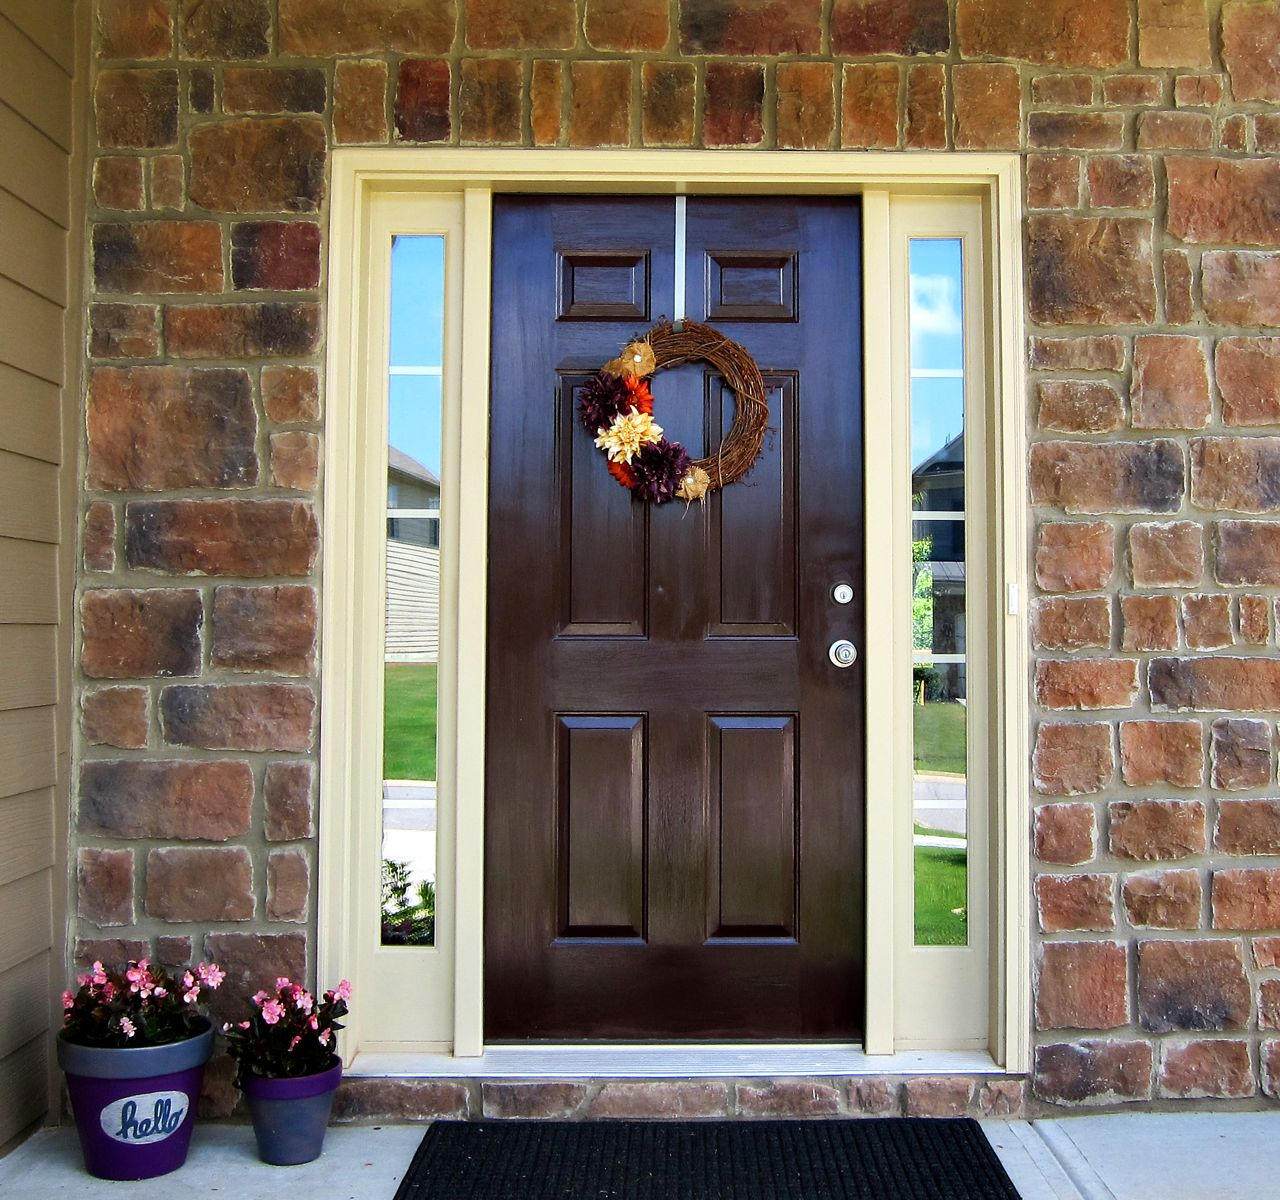 1200 #2C749F Photos Of Cost Of Front Door save image Cost Of Exterior Doors 39671280